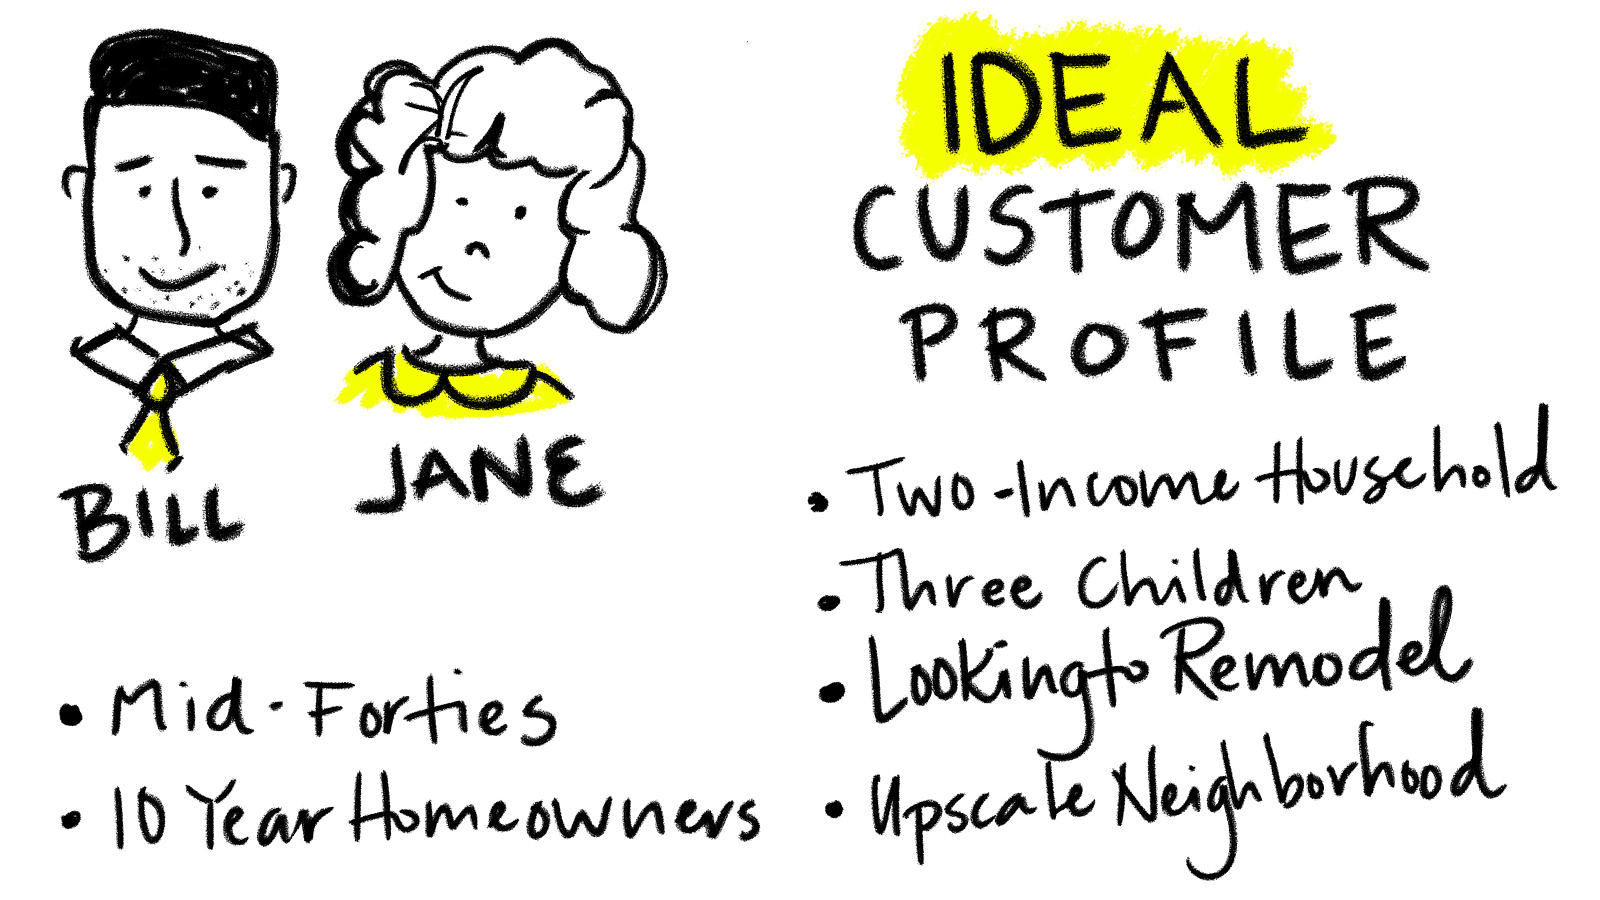 PPC Ideal Customer profile is the key